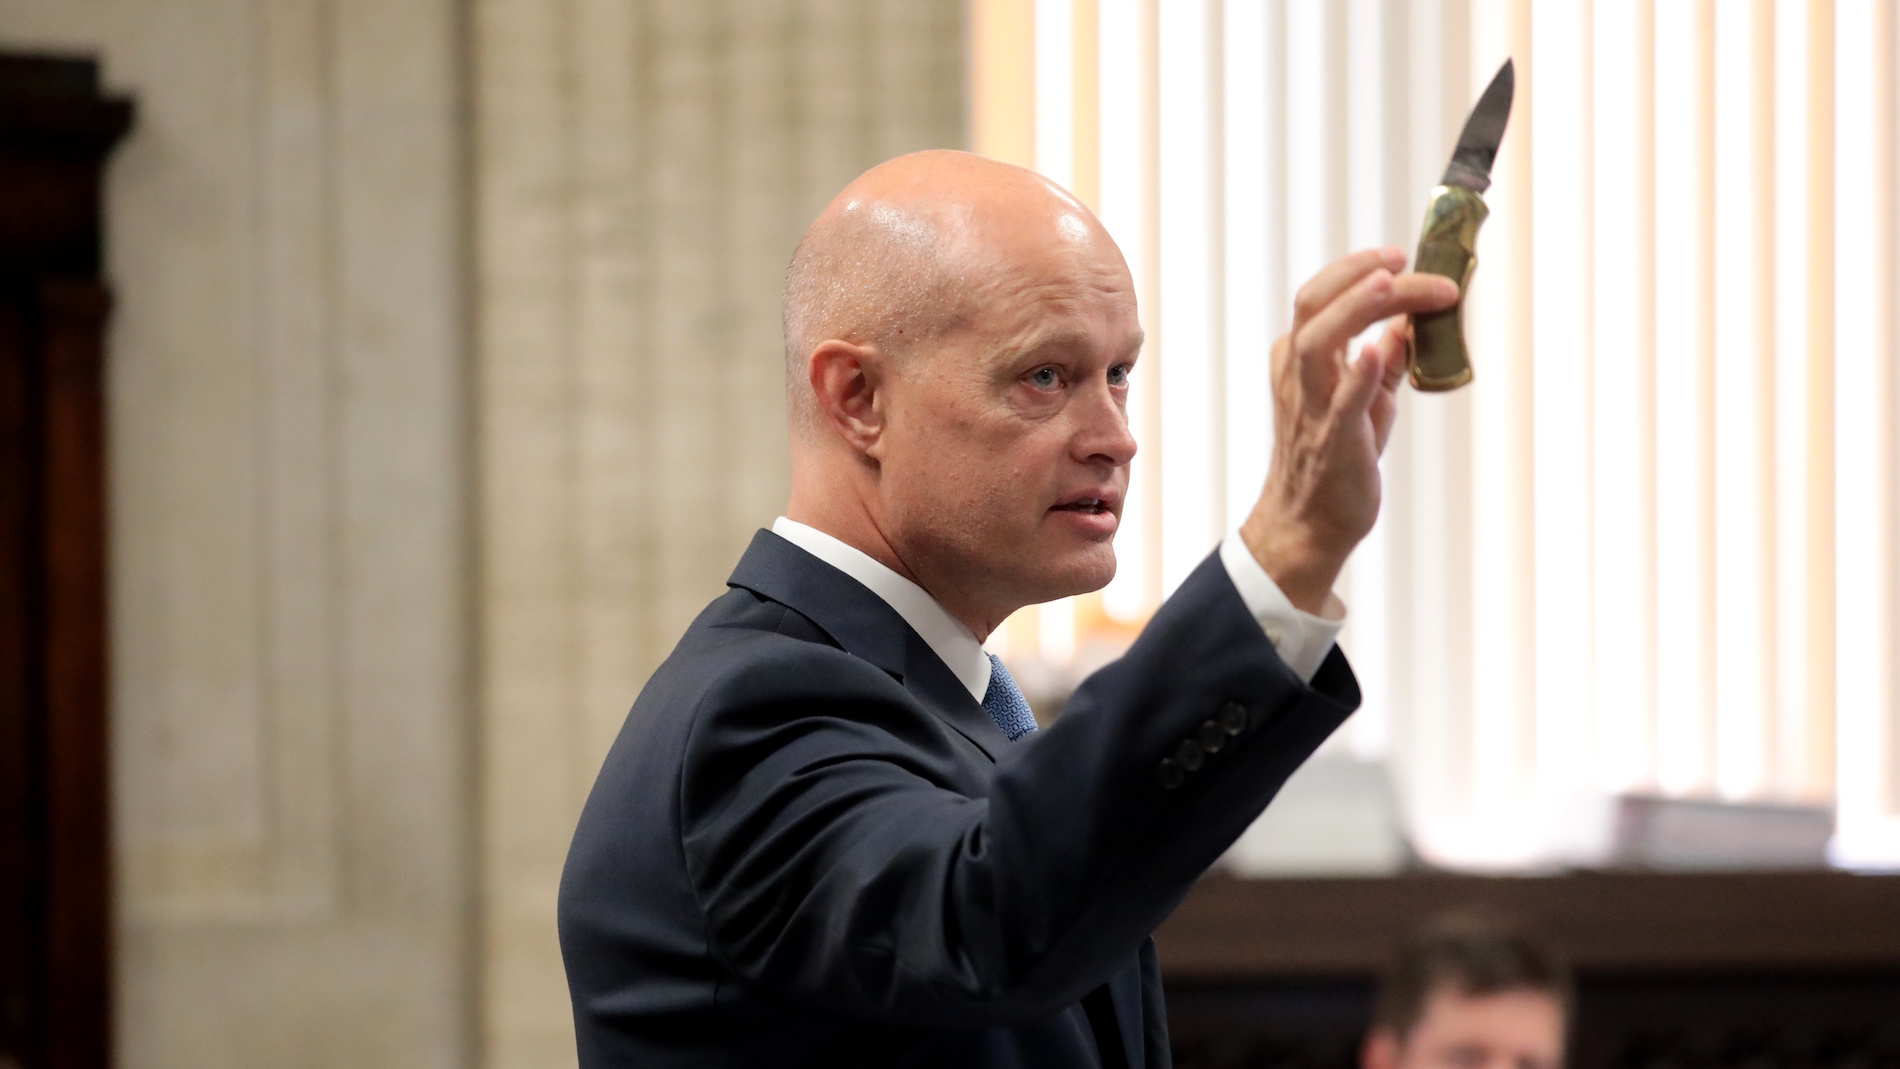 During opening statements on Monday, Sept. 17, 2018, special prosecutor Joseph McMahon holds the 3-inch blade Laquan McDonald carried the night we was killed. (Antonio Perez / Chicago Tribune / Pool)